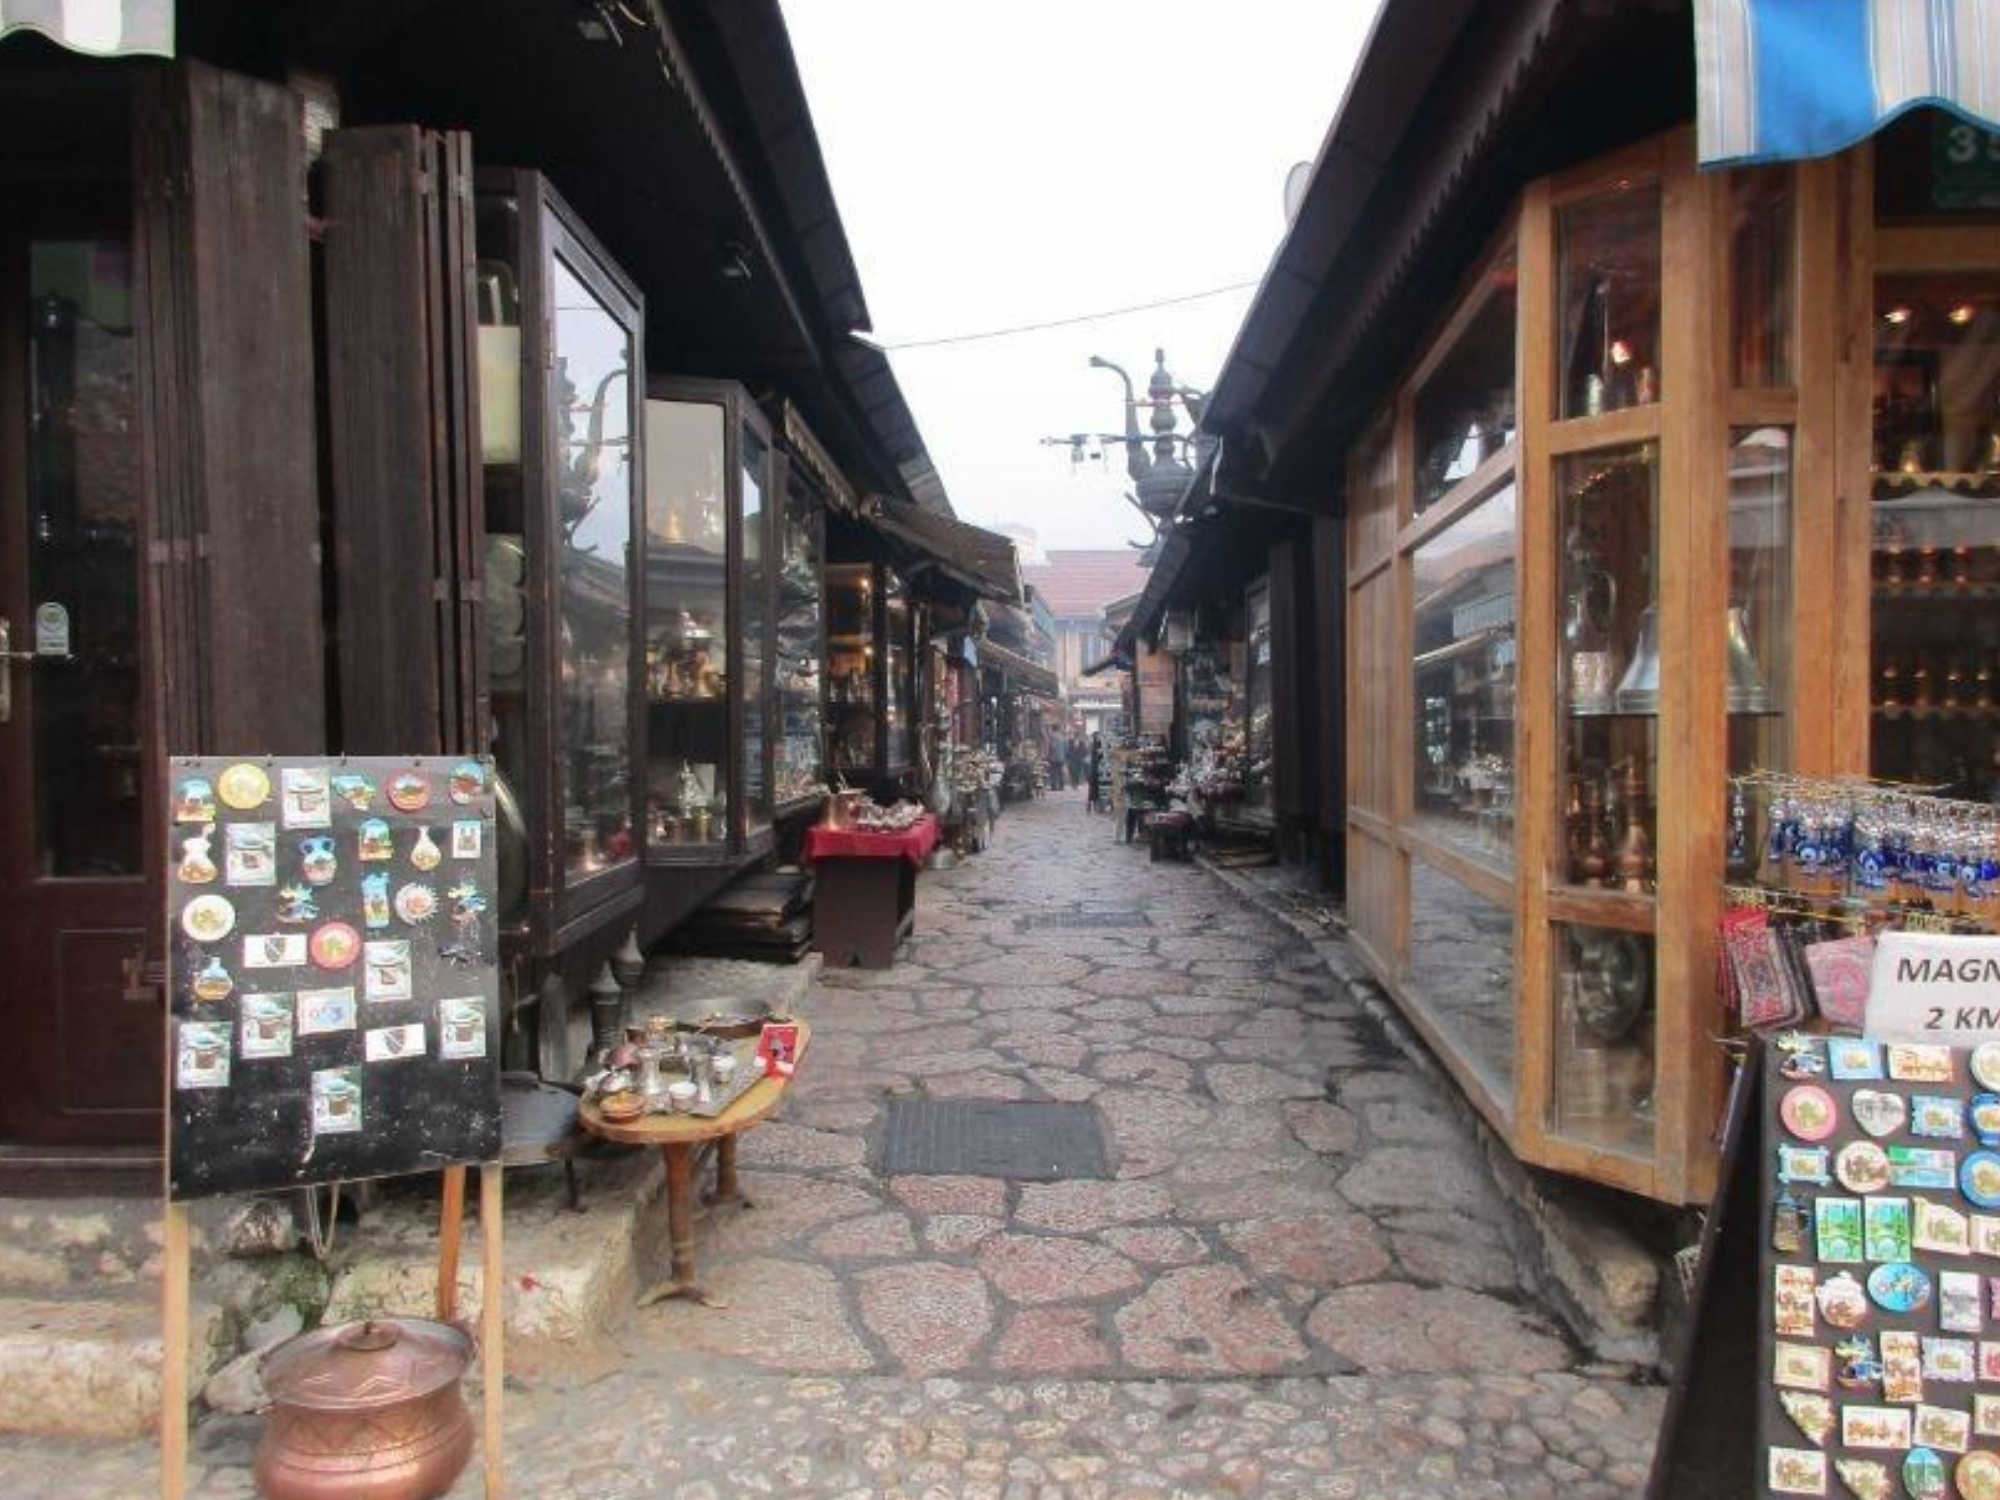 Whats a must visit place in Bosnia & Herzegovina when backpacking the Balkans?